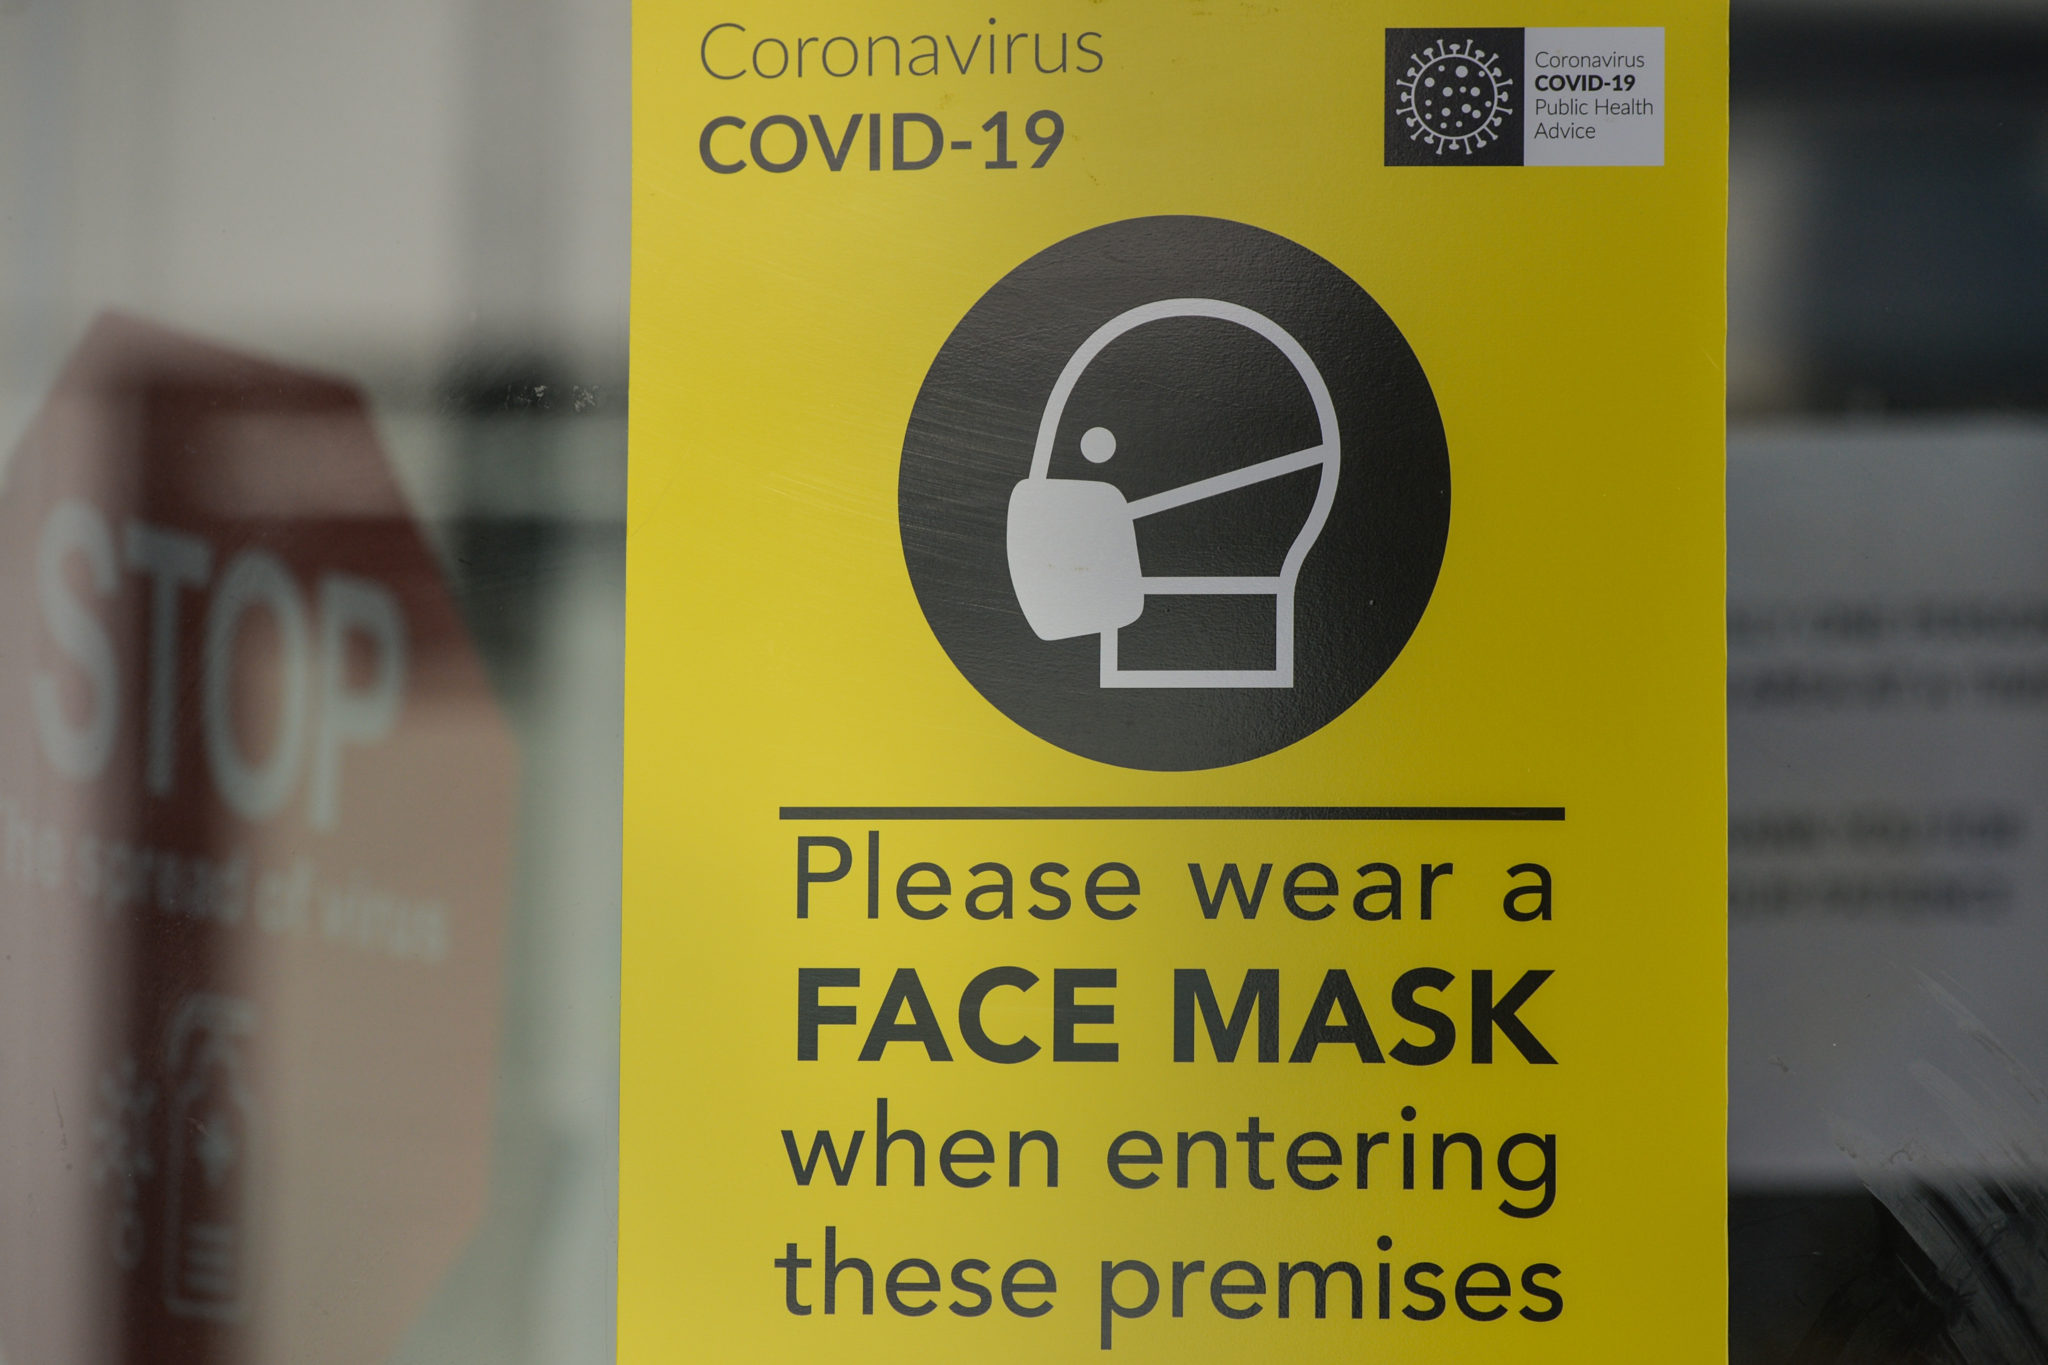 A sign asking people to wear a mask